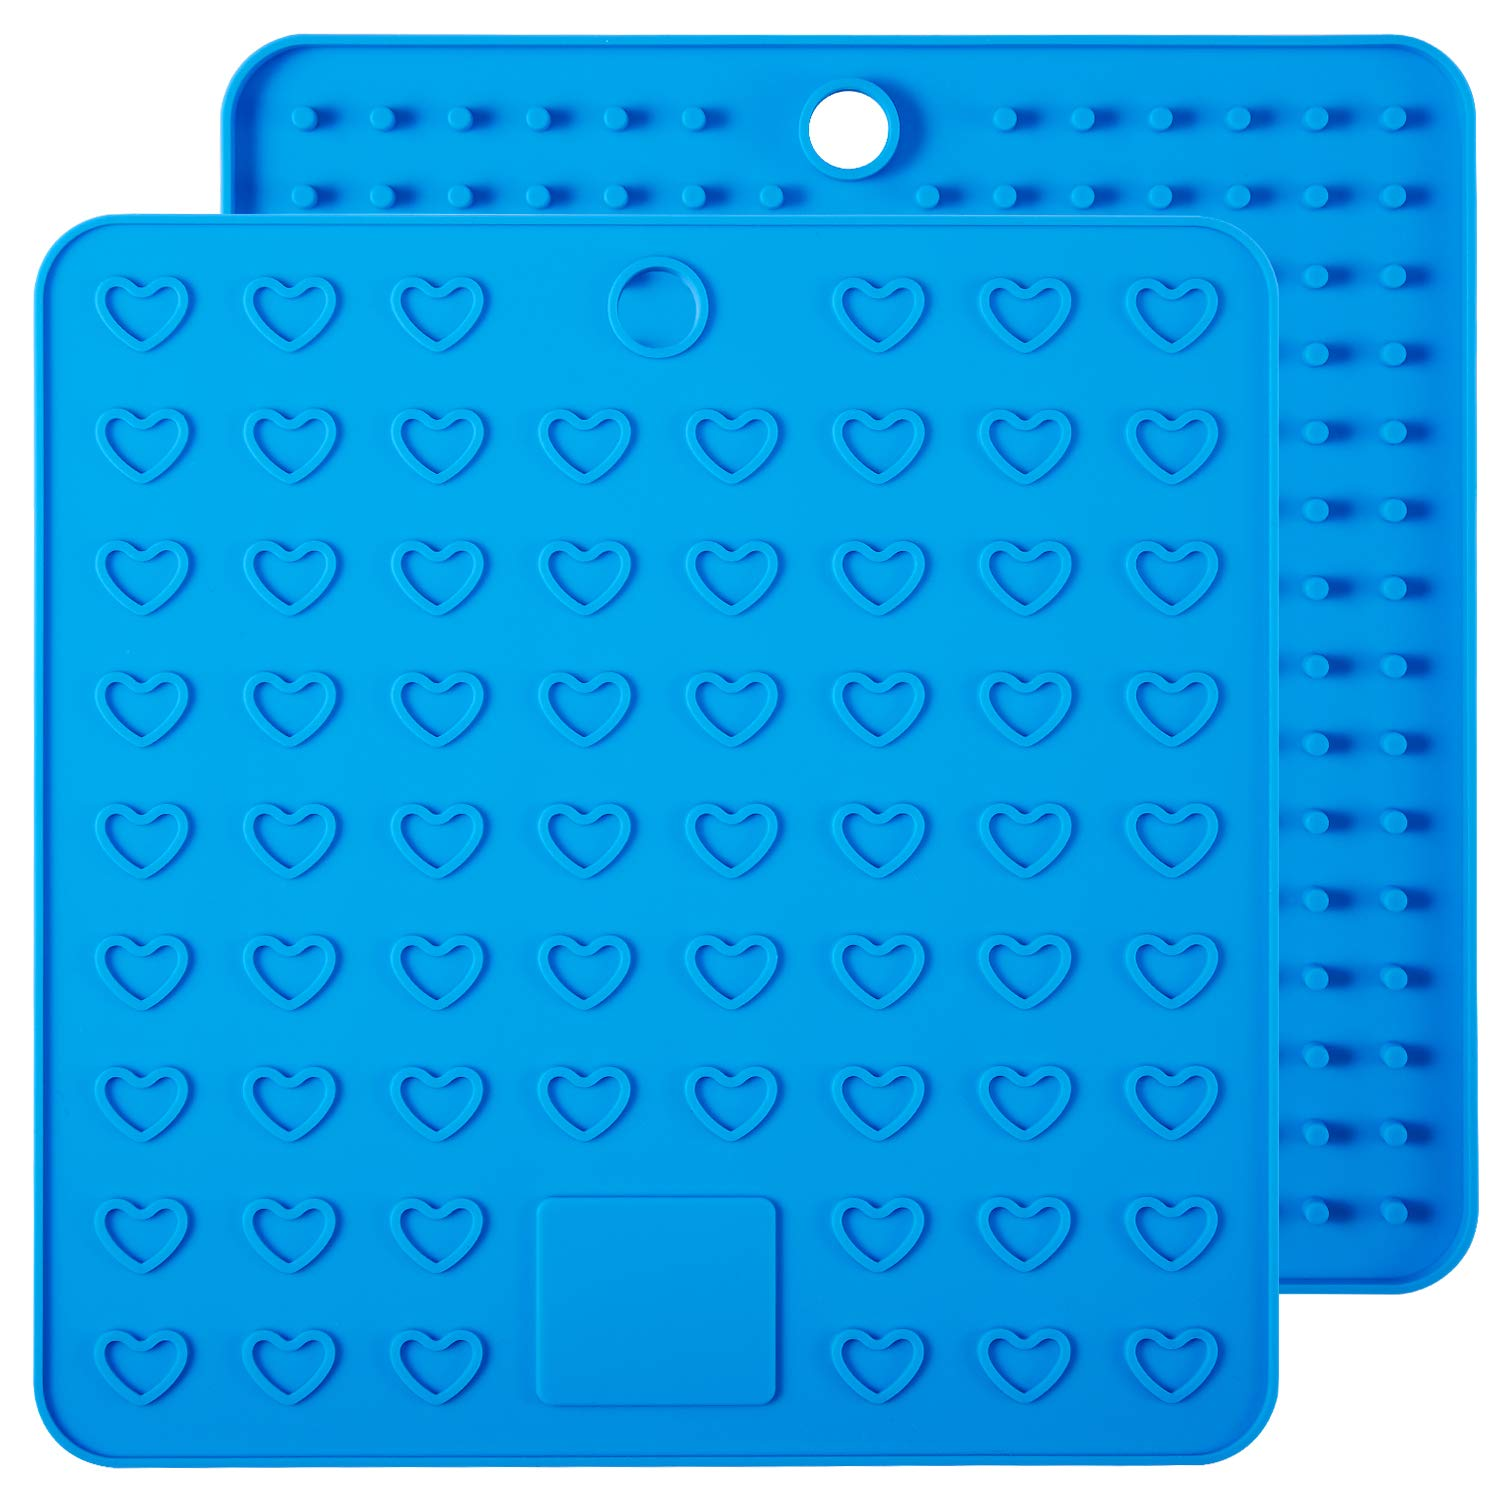 Non Slip Spoon Rest and Large Coasters ME.FAN Silicone Pot Holder /& Trivets 2 Set Silicone Hot Pads,Potholders and Hot Mitts Flexible Durable Black Insulated